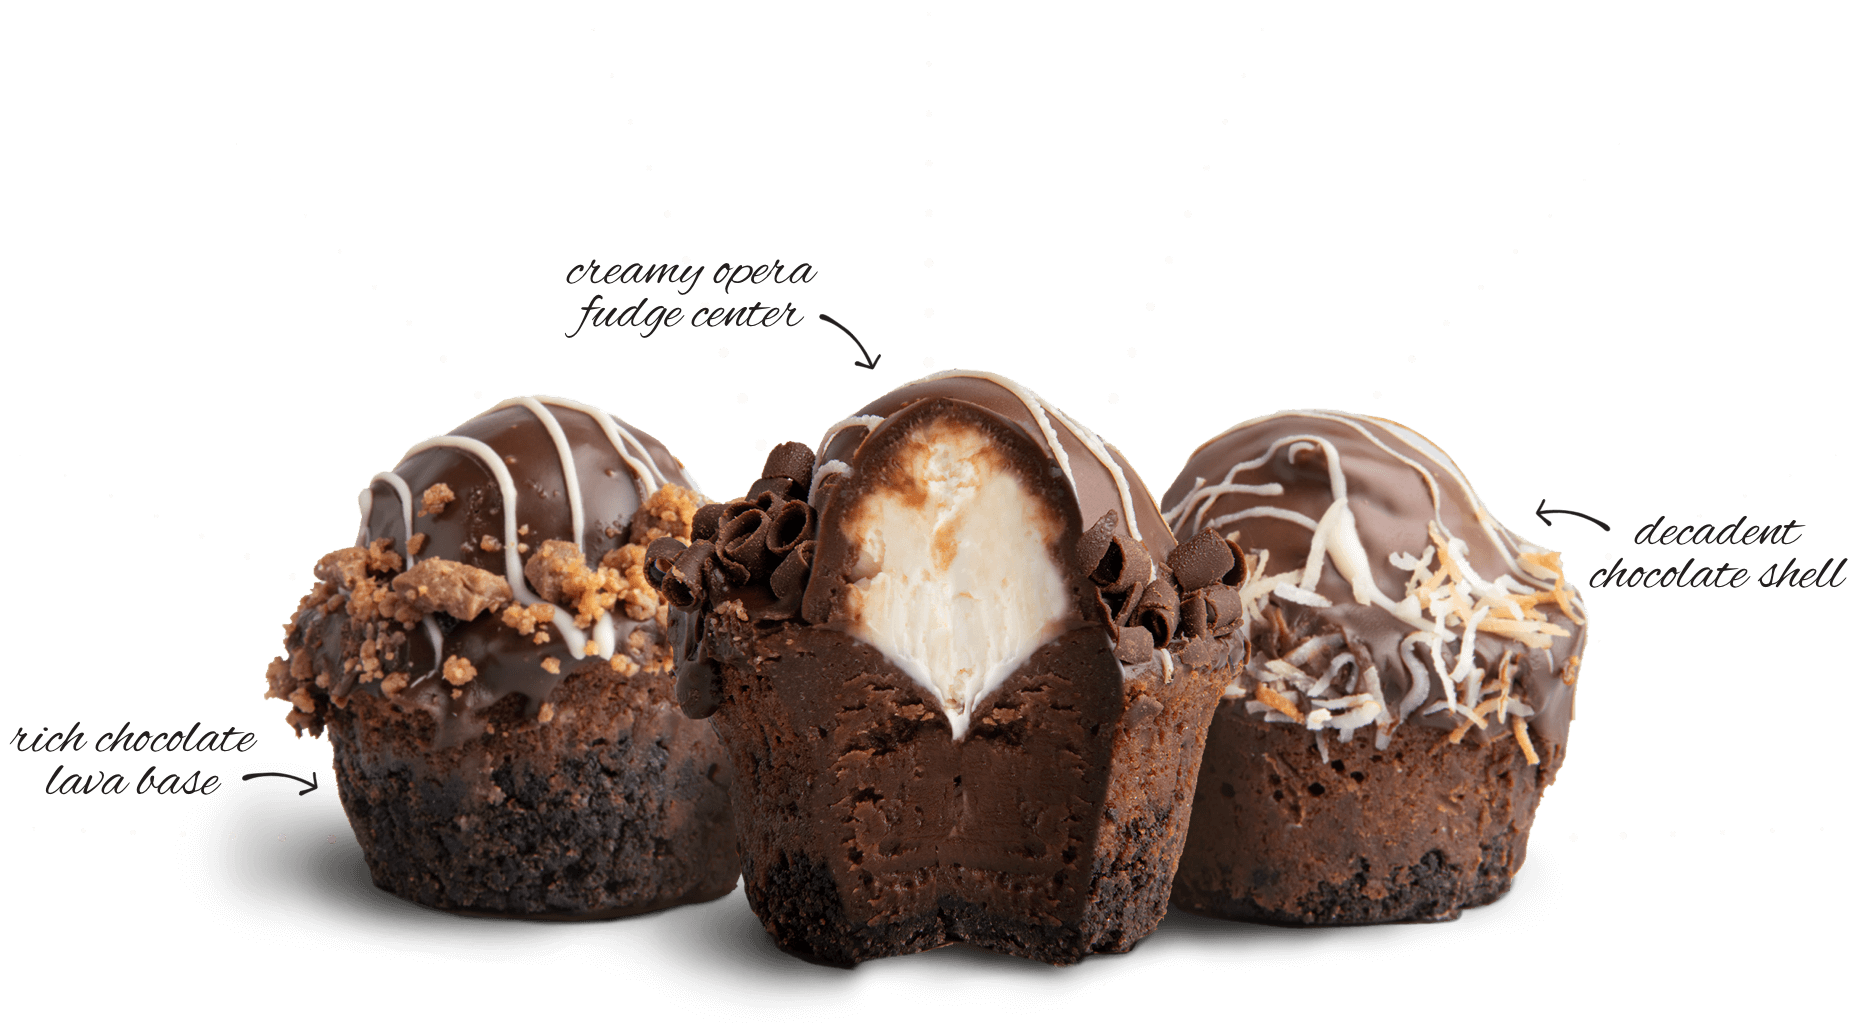 Photograph of fudge bombs showing the fudge brownie base, mousse-filled cream center, and a decadent chocolate shell.